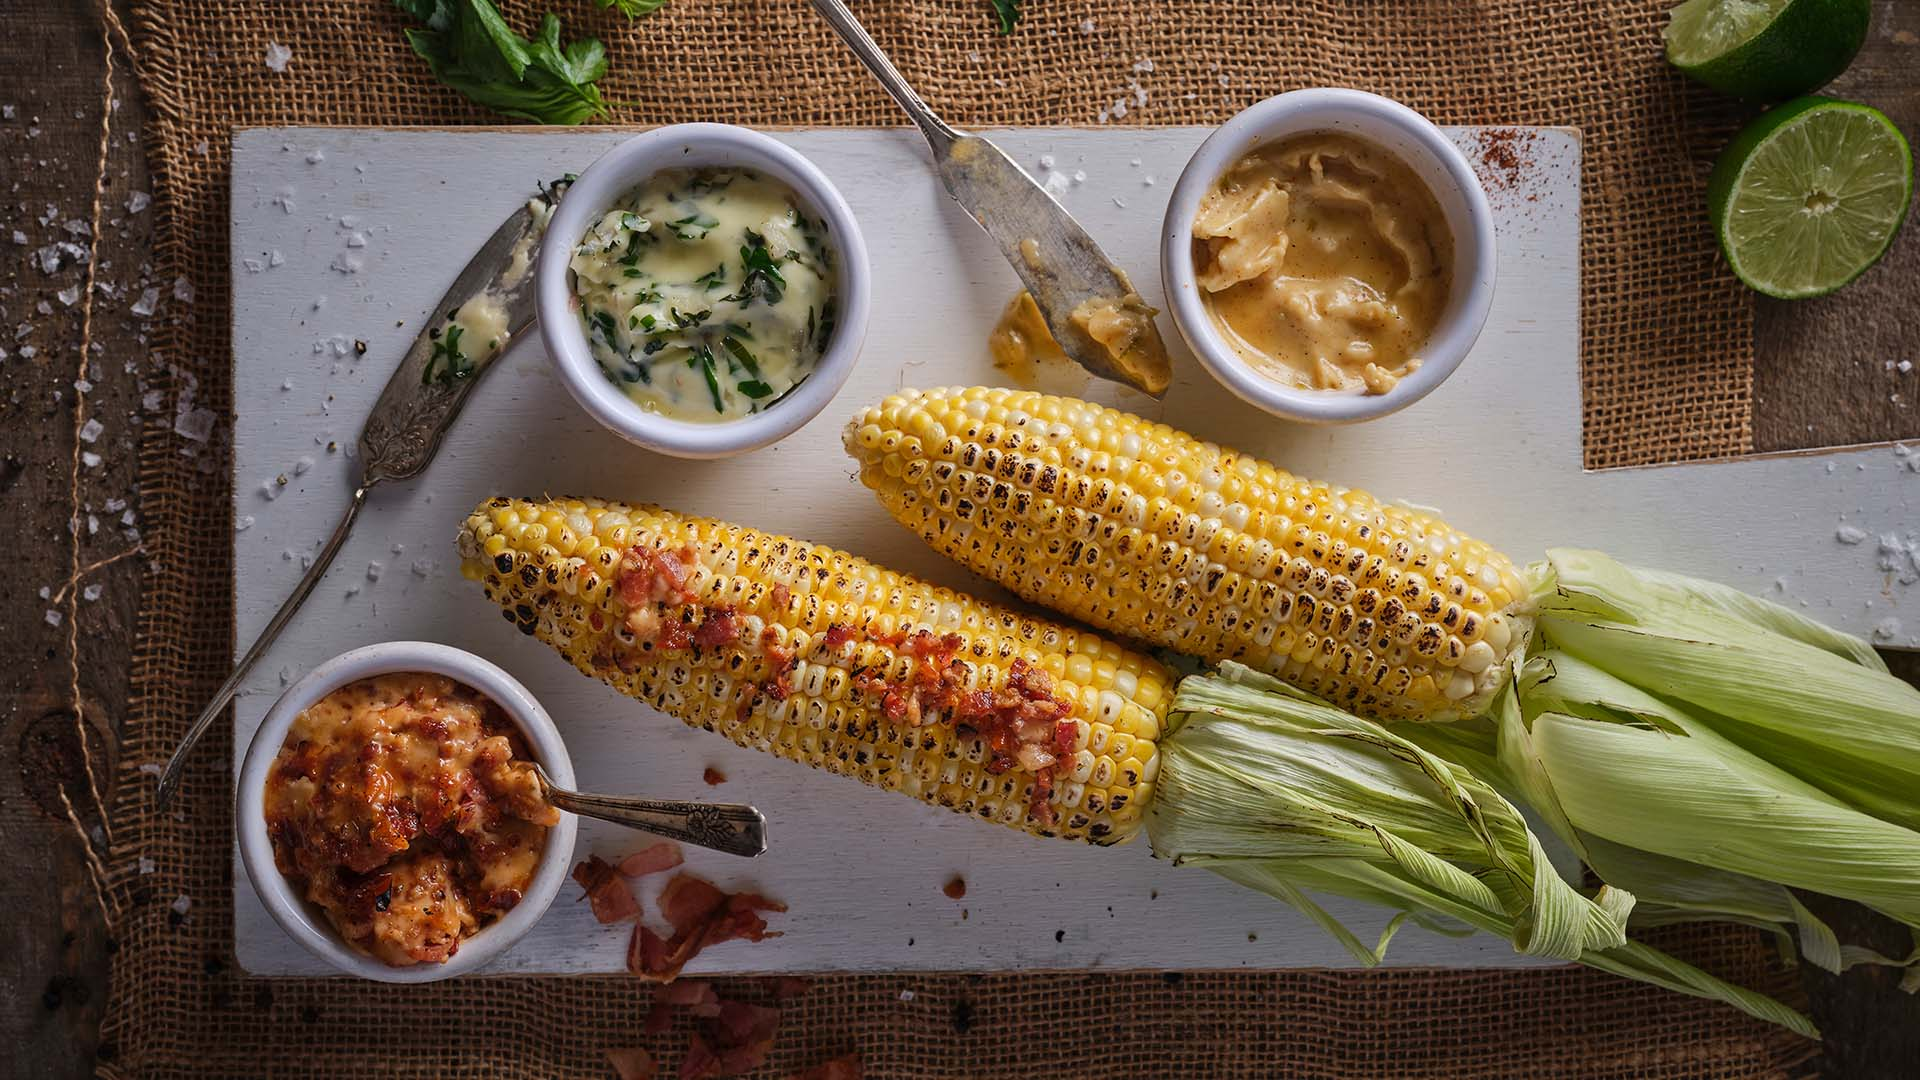 Overhead shot of two cobs of corn with flavoured compound butters slathered on them next to small prep bowls containing compound butters on a white serving board on top of a wooden surface.